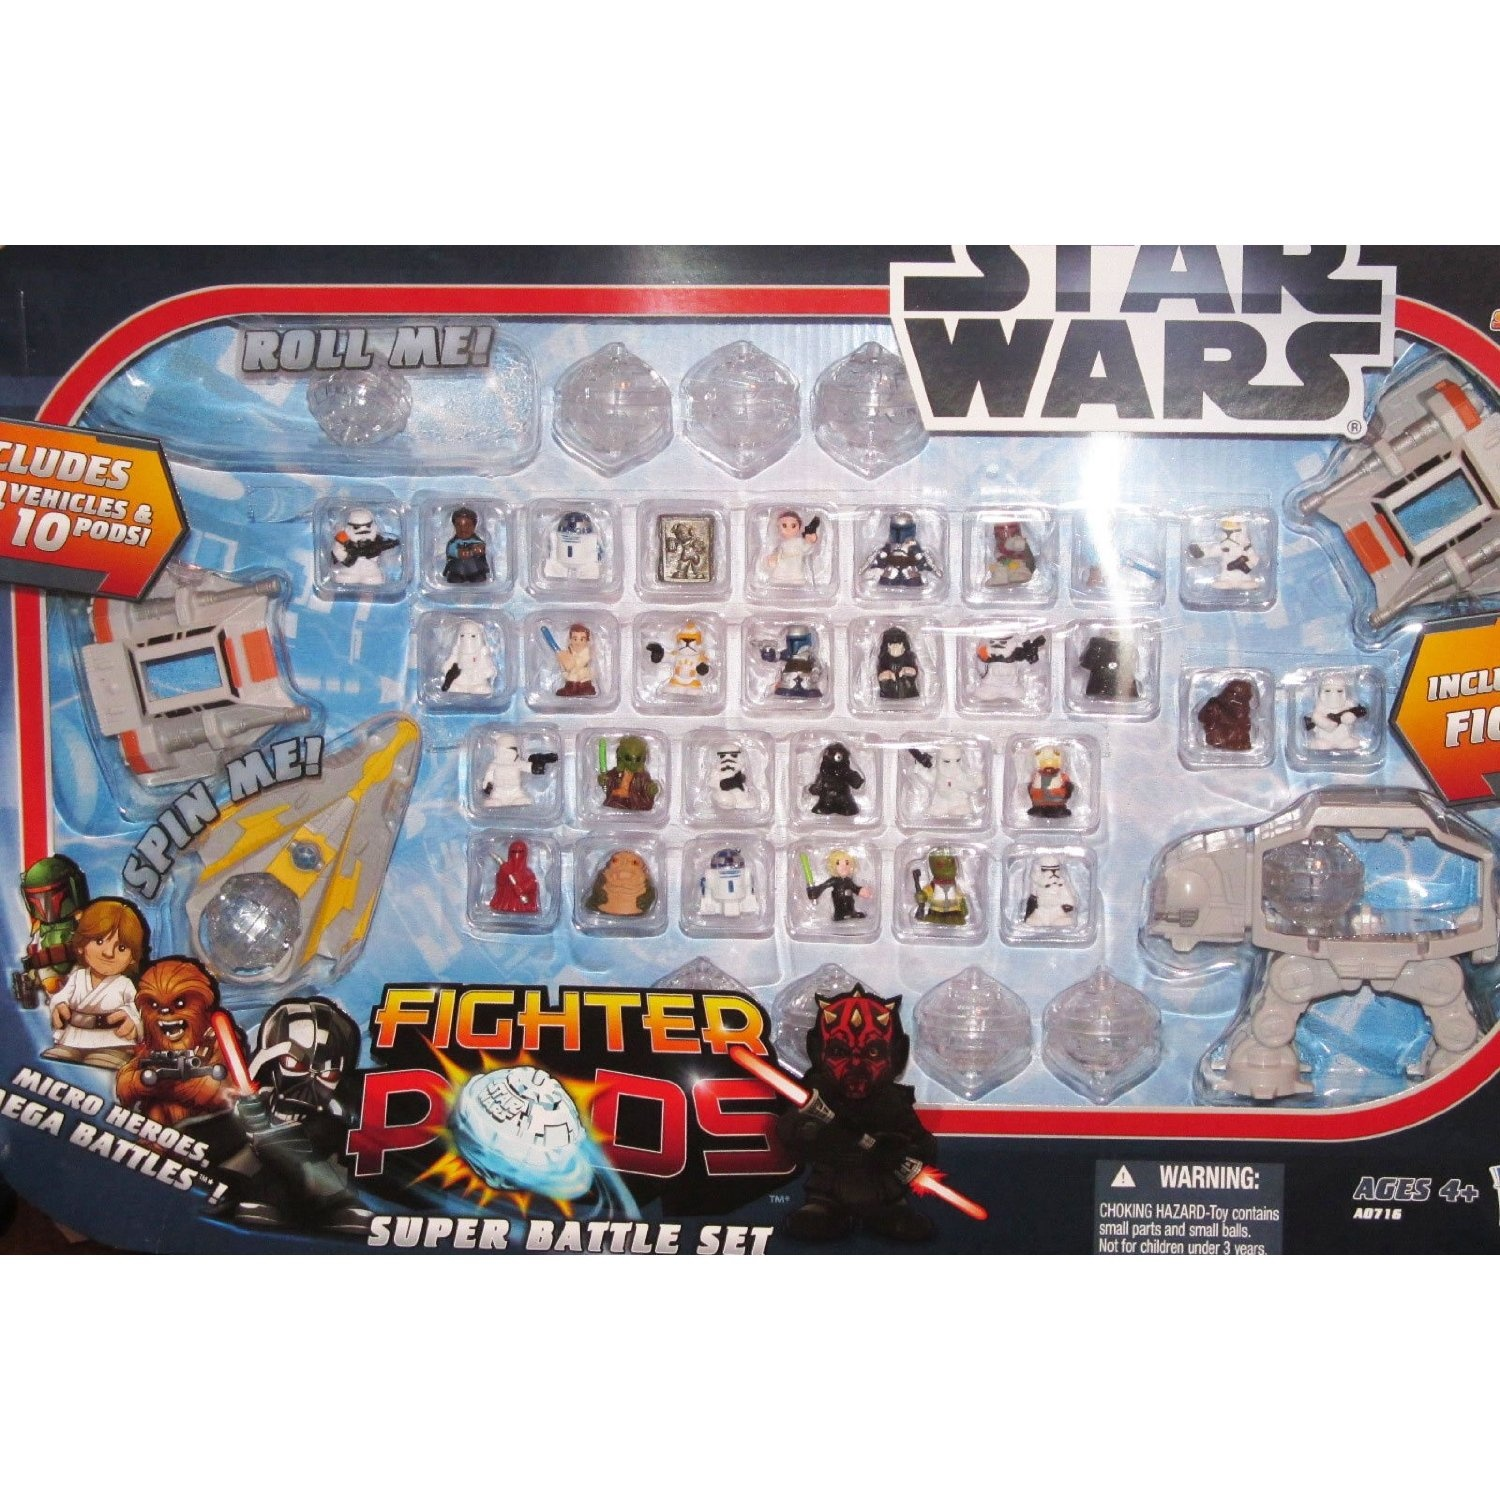 Star Wars Fighter Pod figures